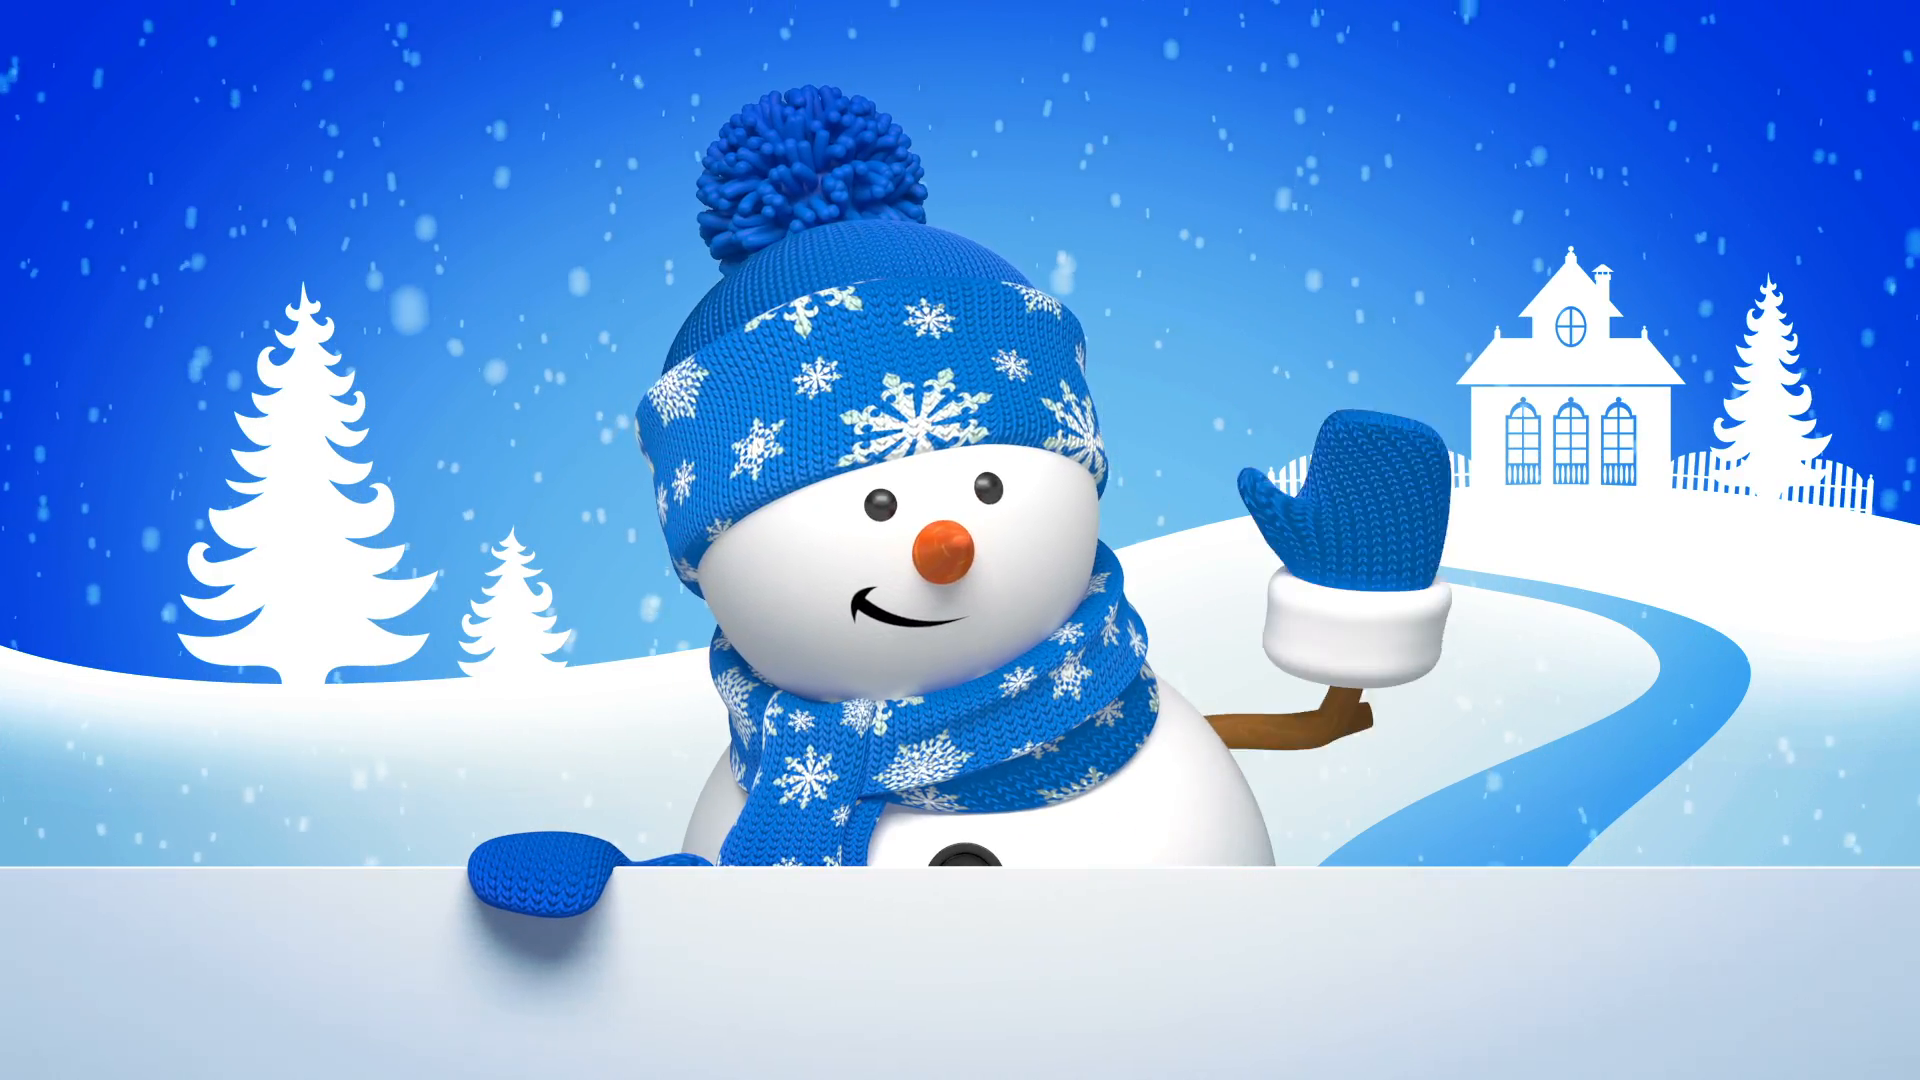 real snowman pictures